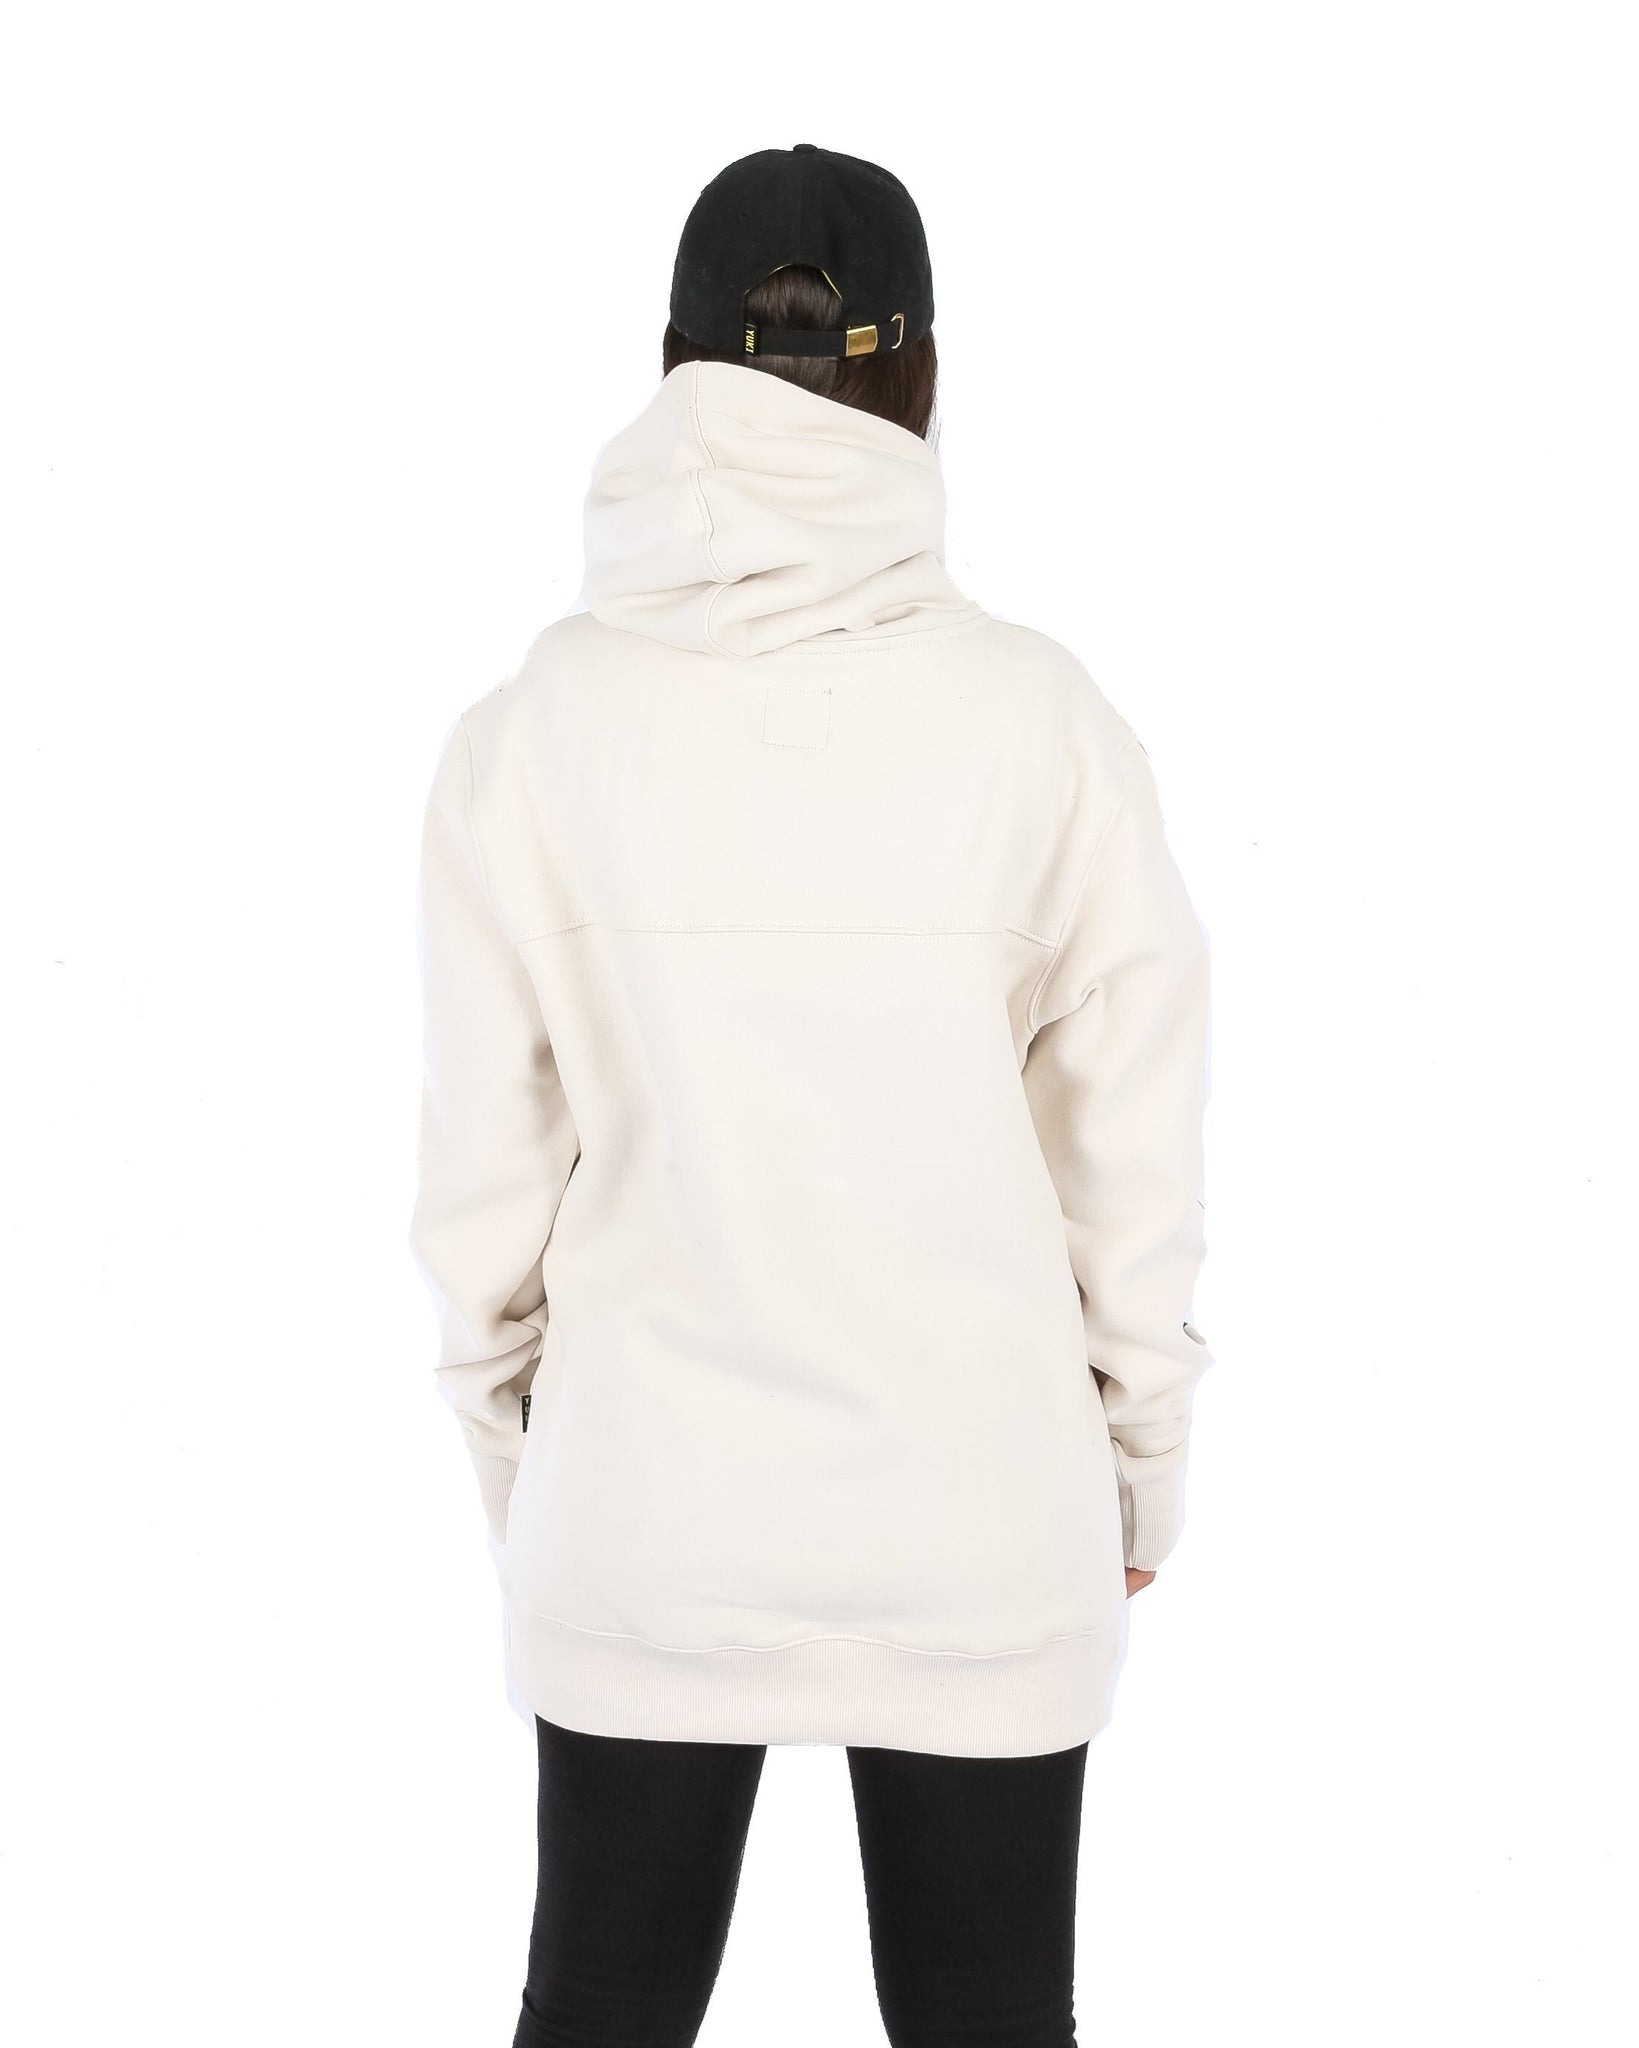 Do Fun Shit Hoodie Off White - Yuki Threads